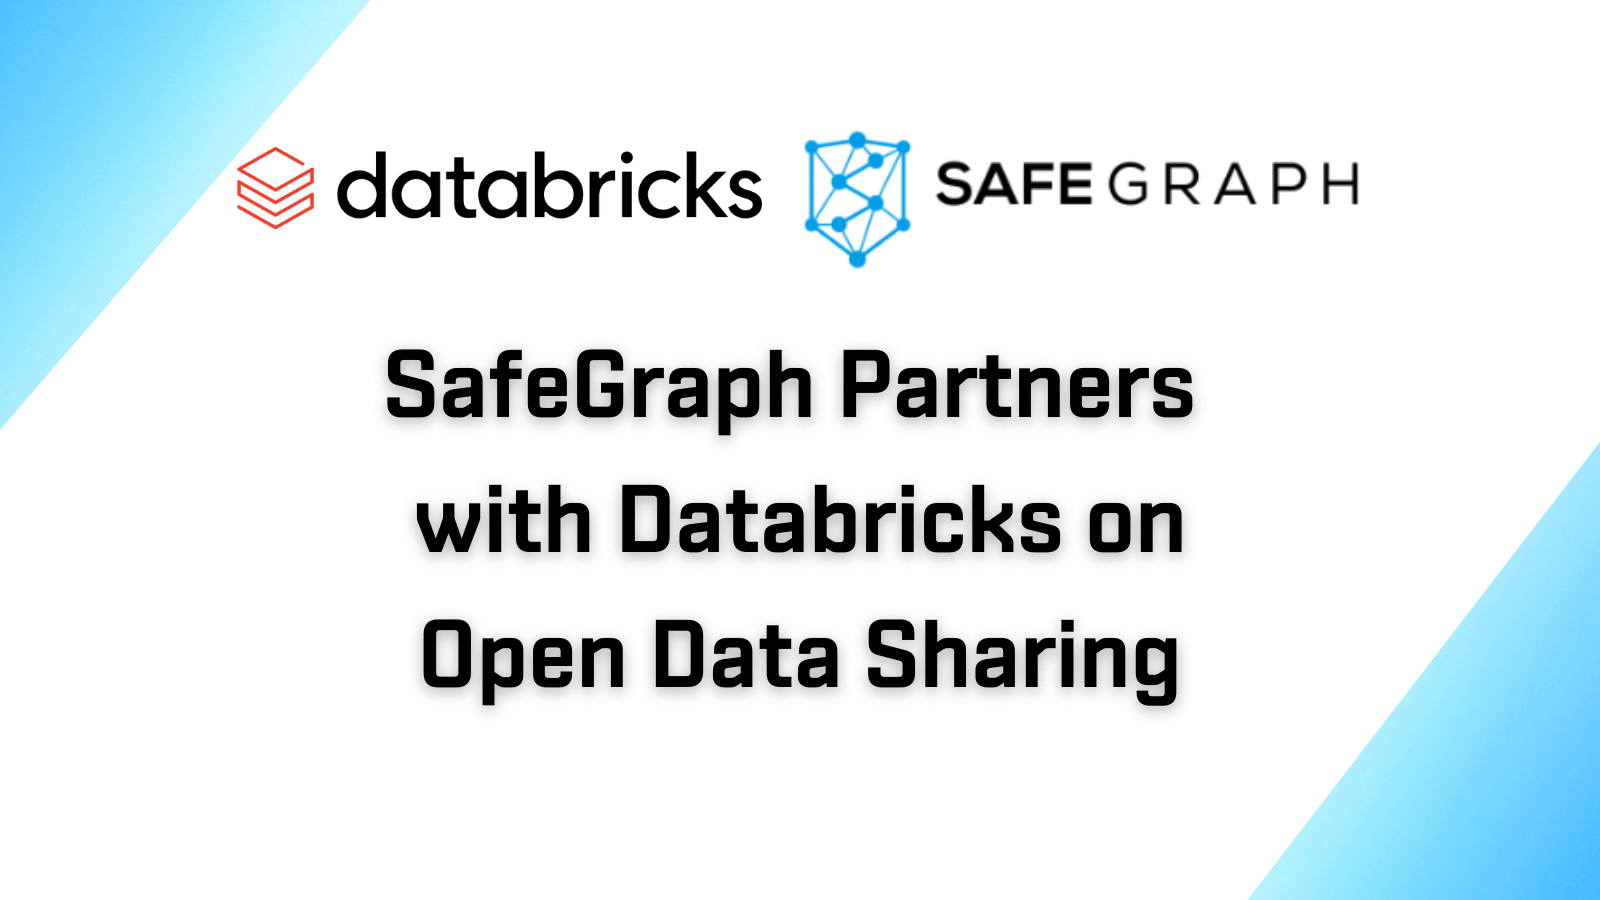 SafeGraph Partners with Databricks on Open Data Sharing